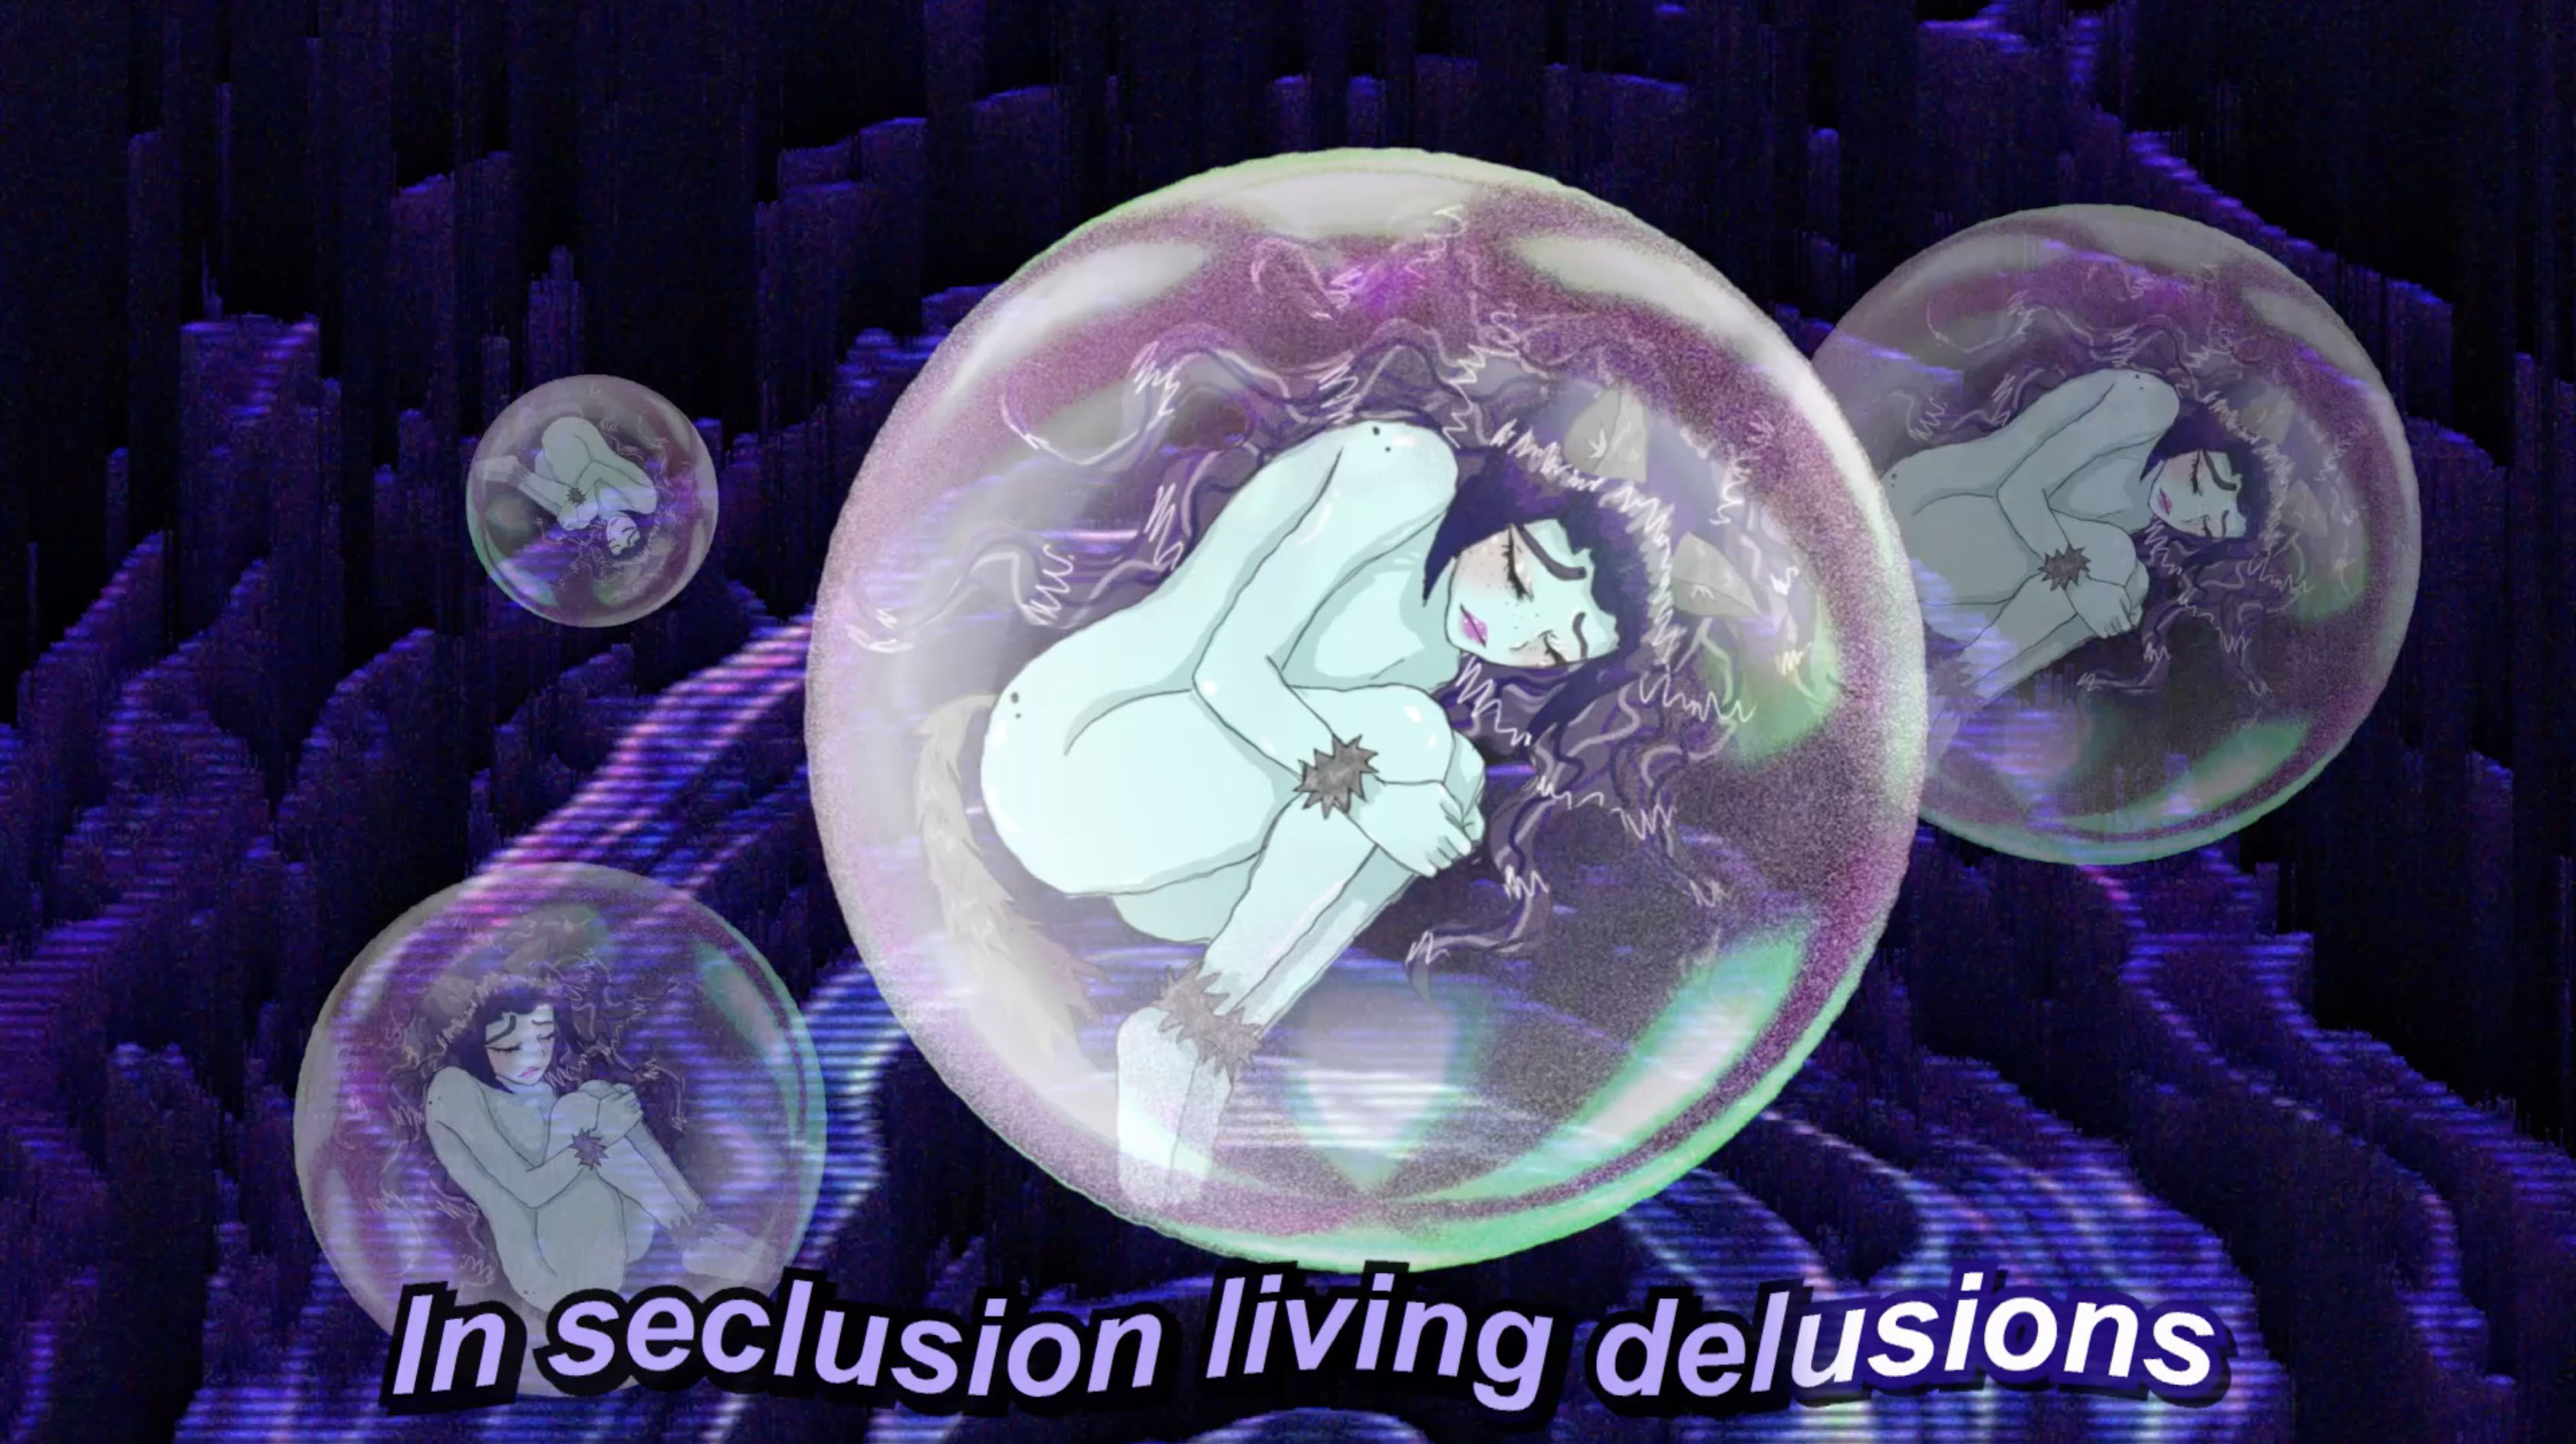 "Four bubbles with girls curled inside in the fetal position with a caption that says ""In seclusion living delusions""."